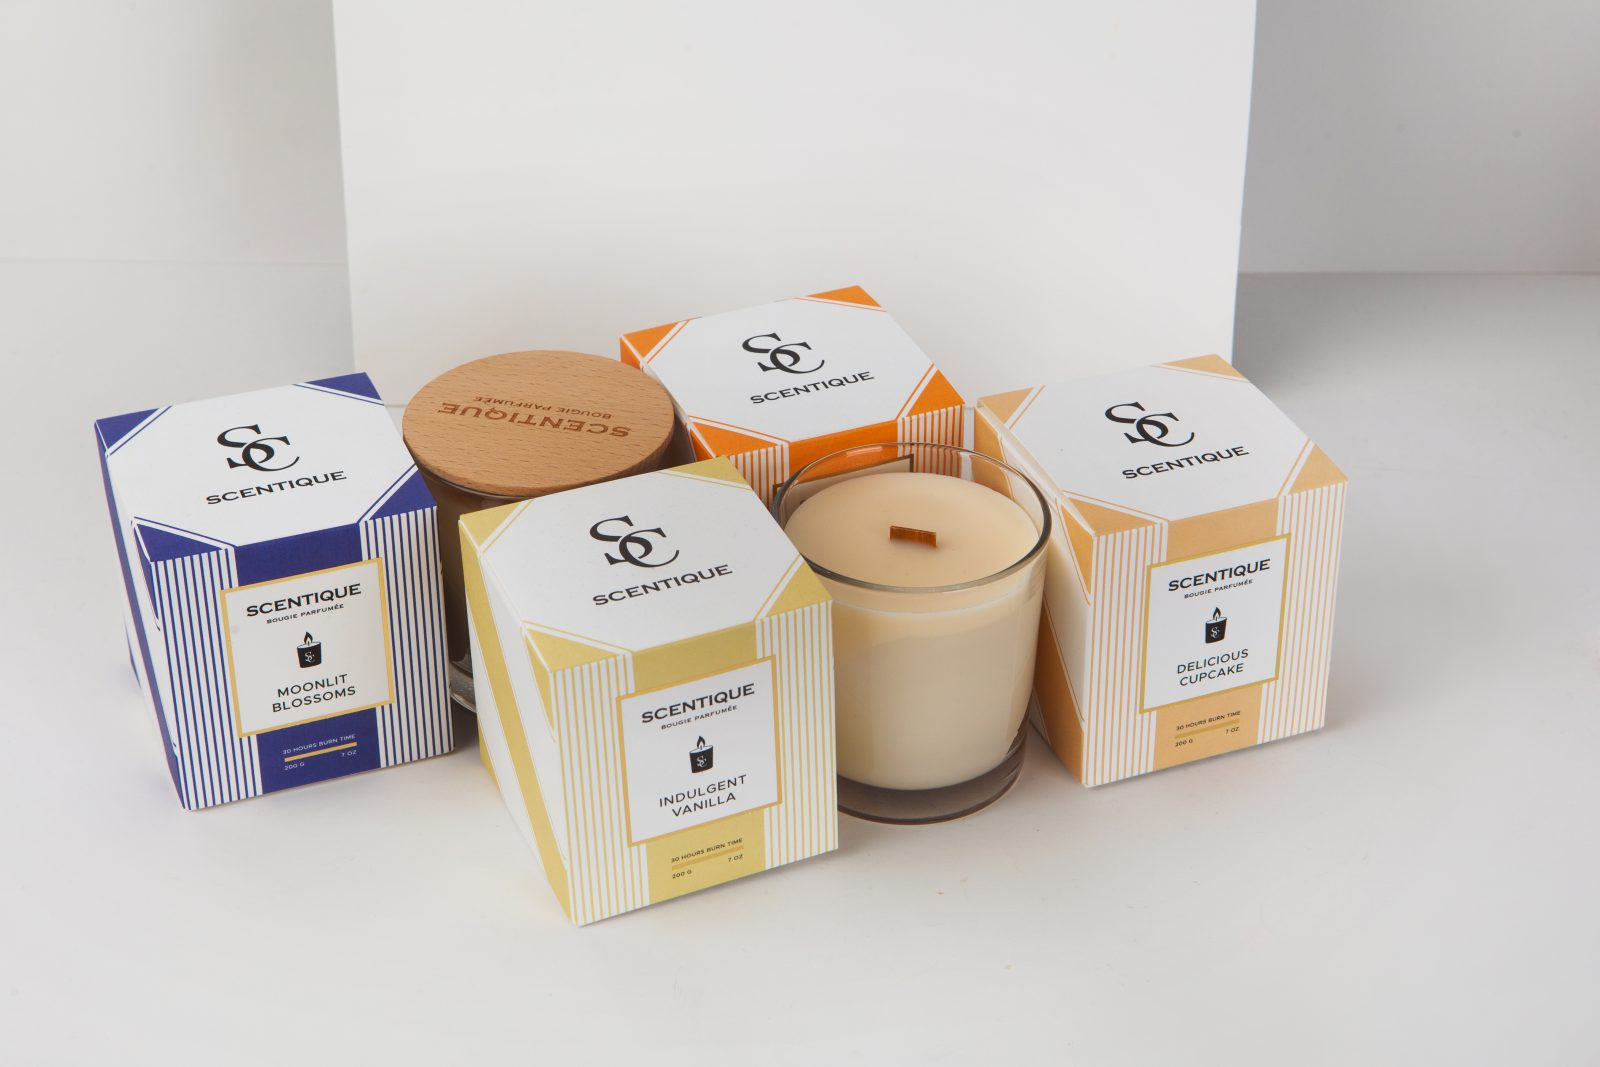 Scentique's Elegant Candle Packaging By The Offset Group